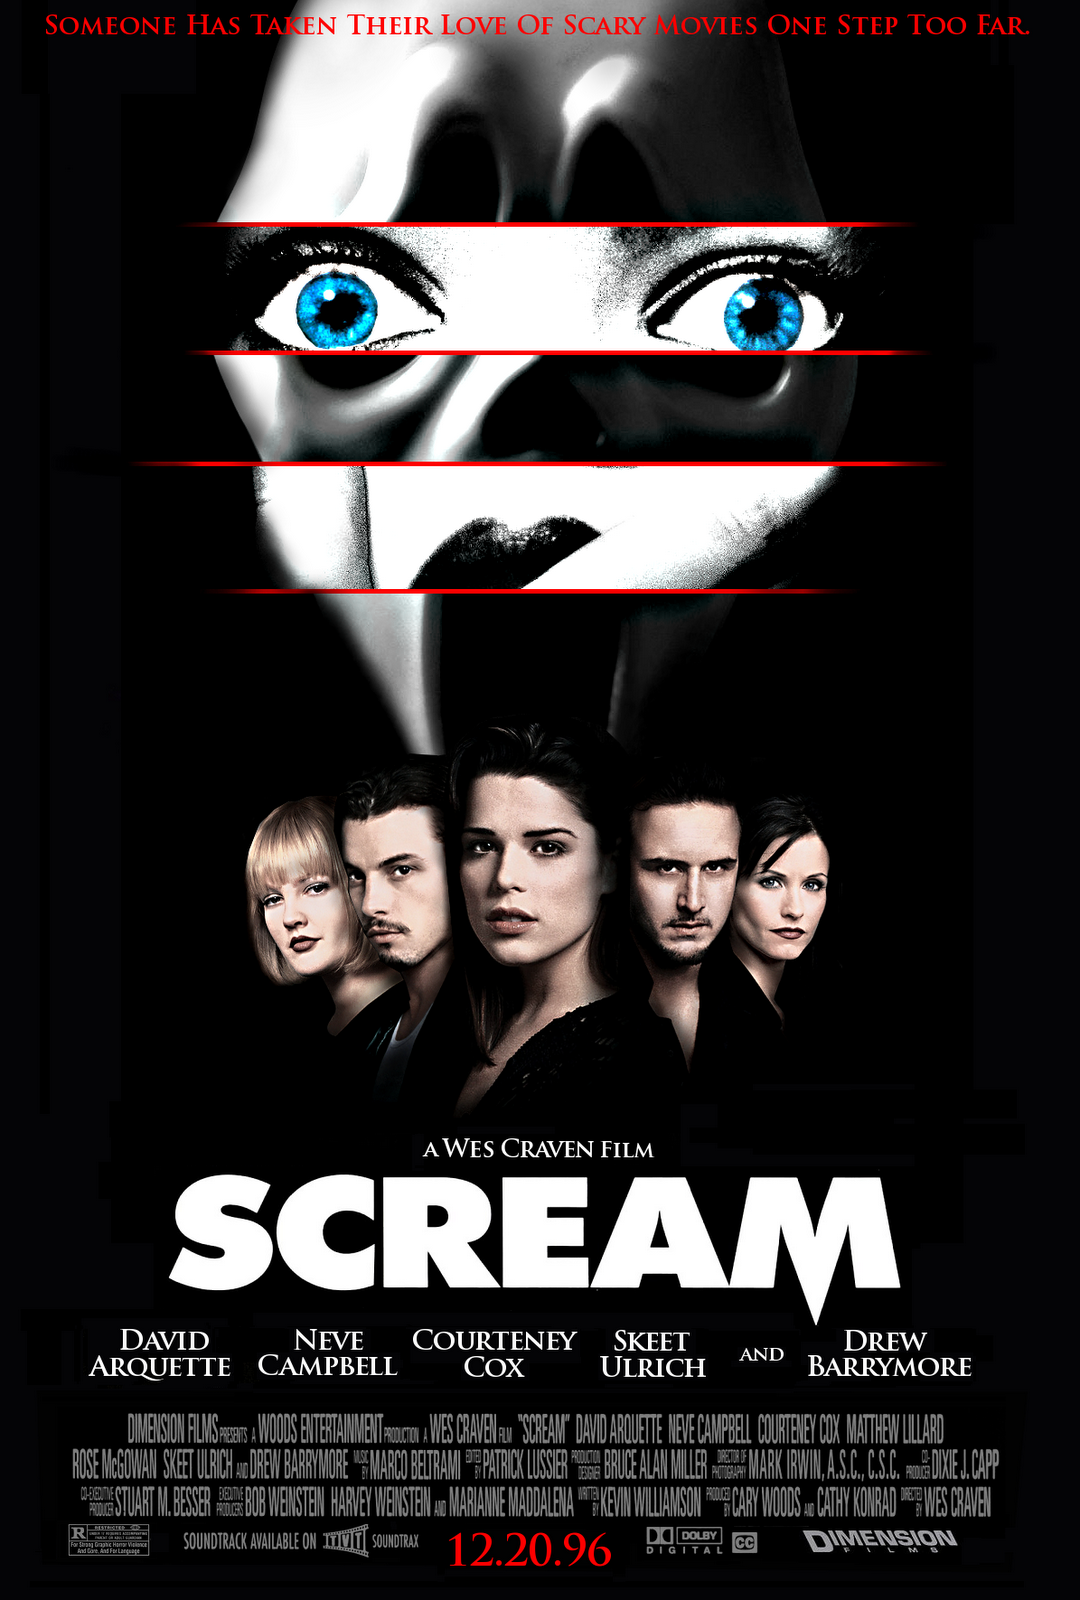 Scream (1996) - Ending (3/3) - YouTube